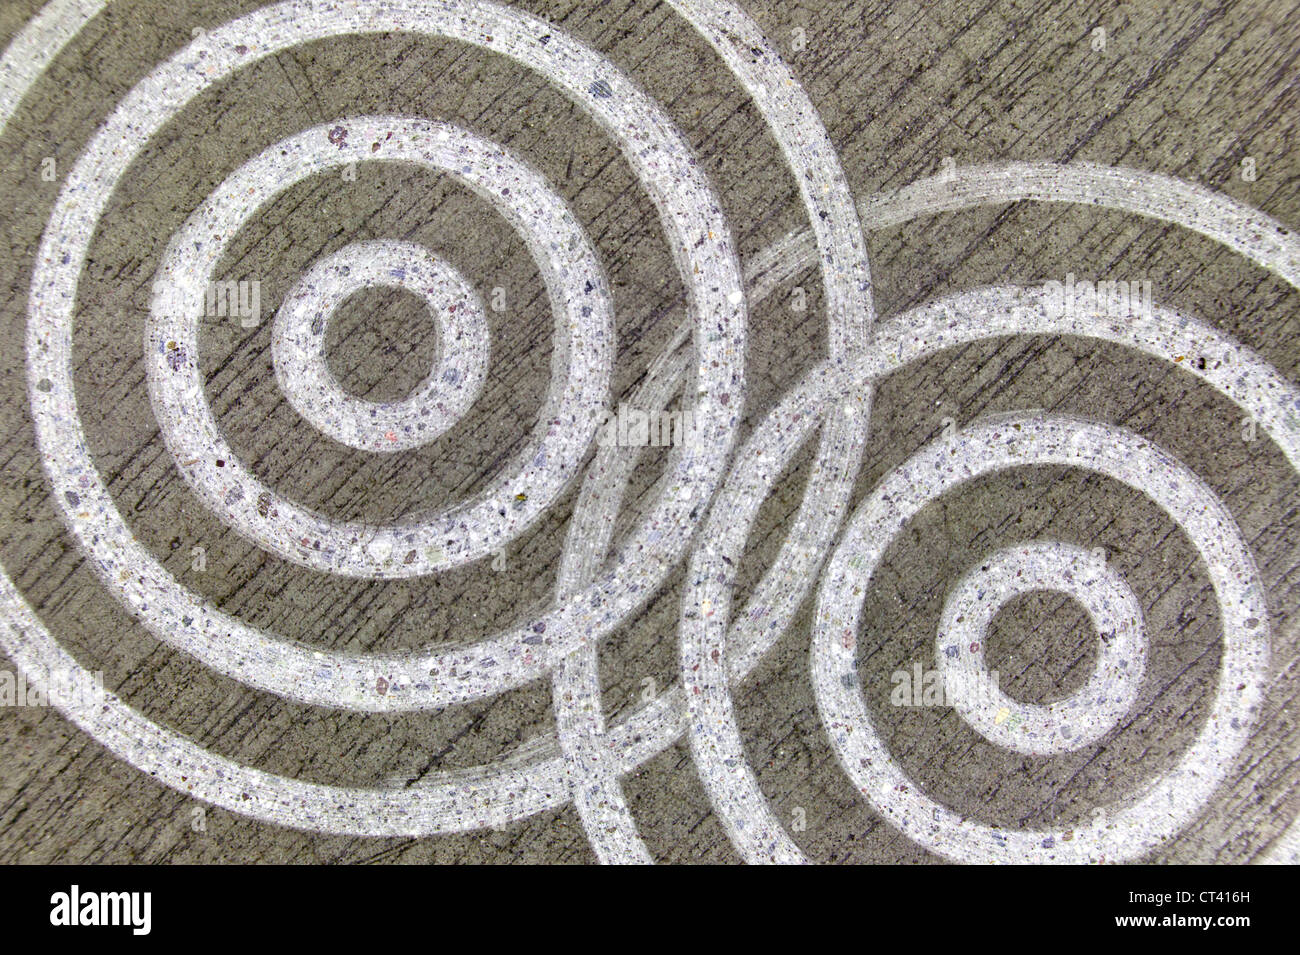 Engraved circles in concrete - Stock Image